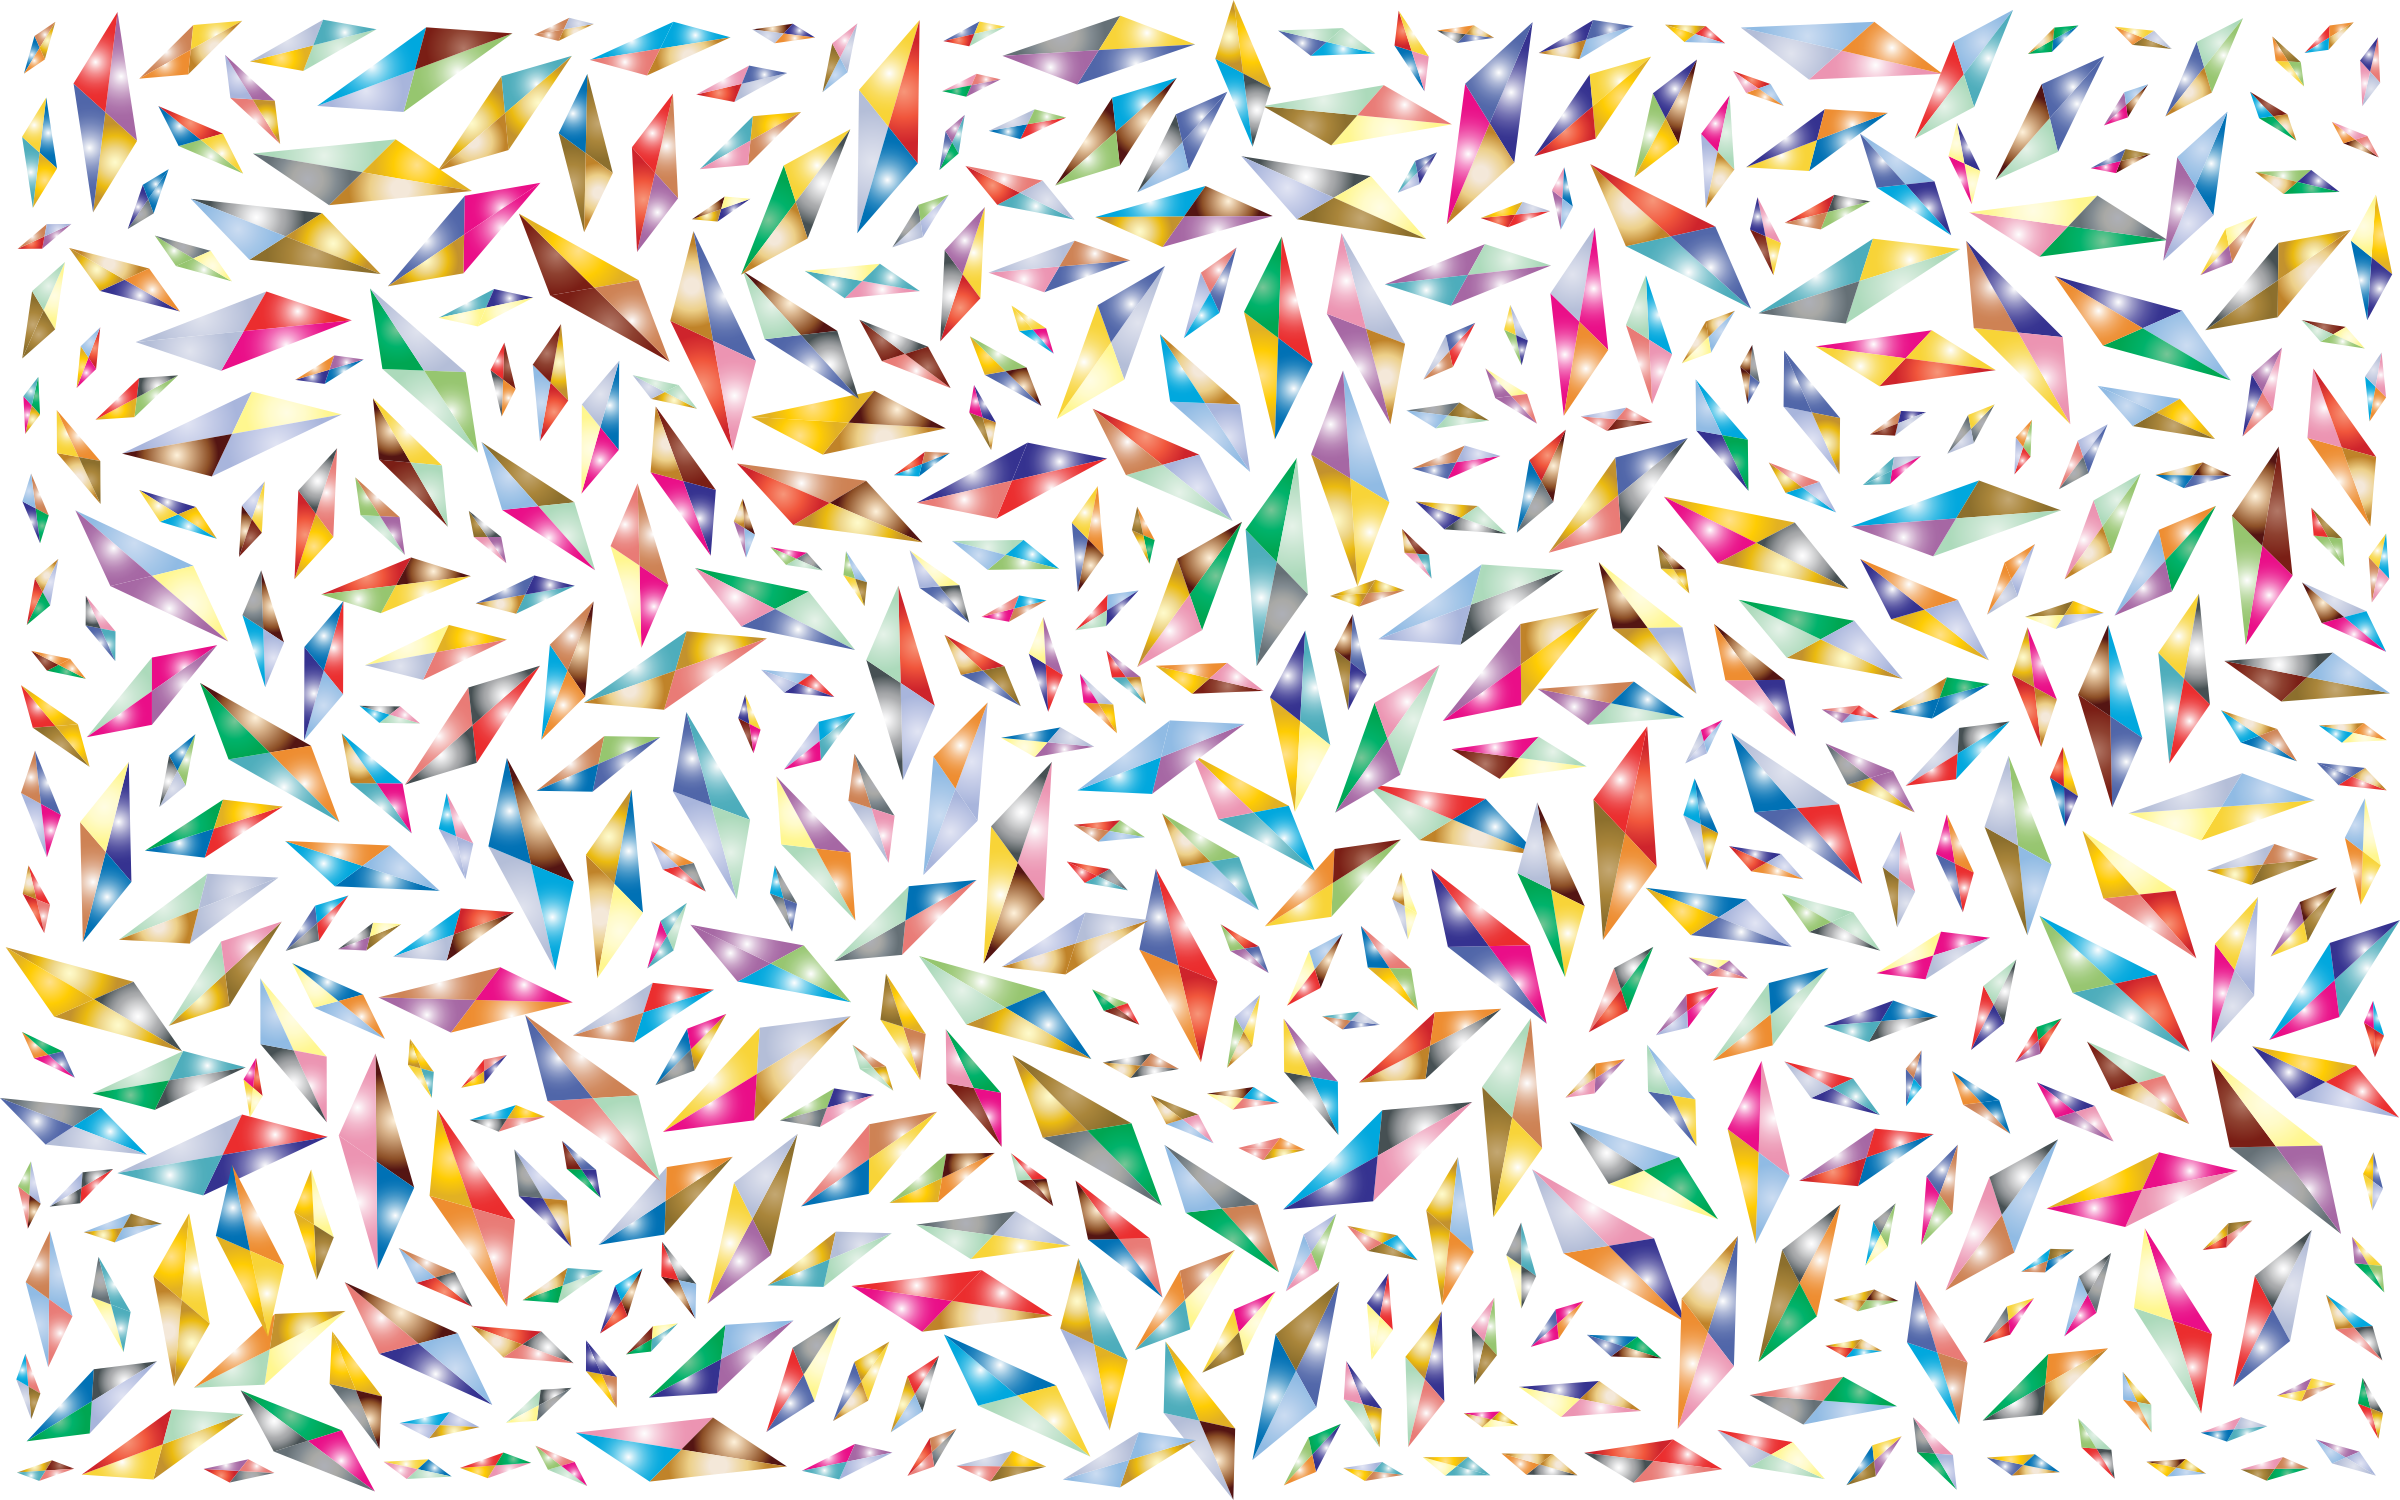 clipart free download Background clipart sprinkle. Prismatic abstract geometric diamonds.